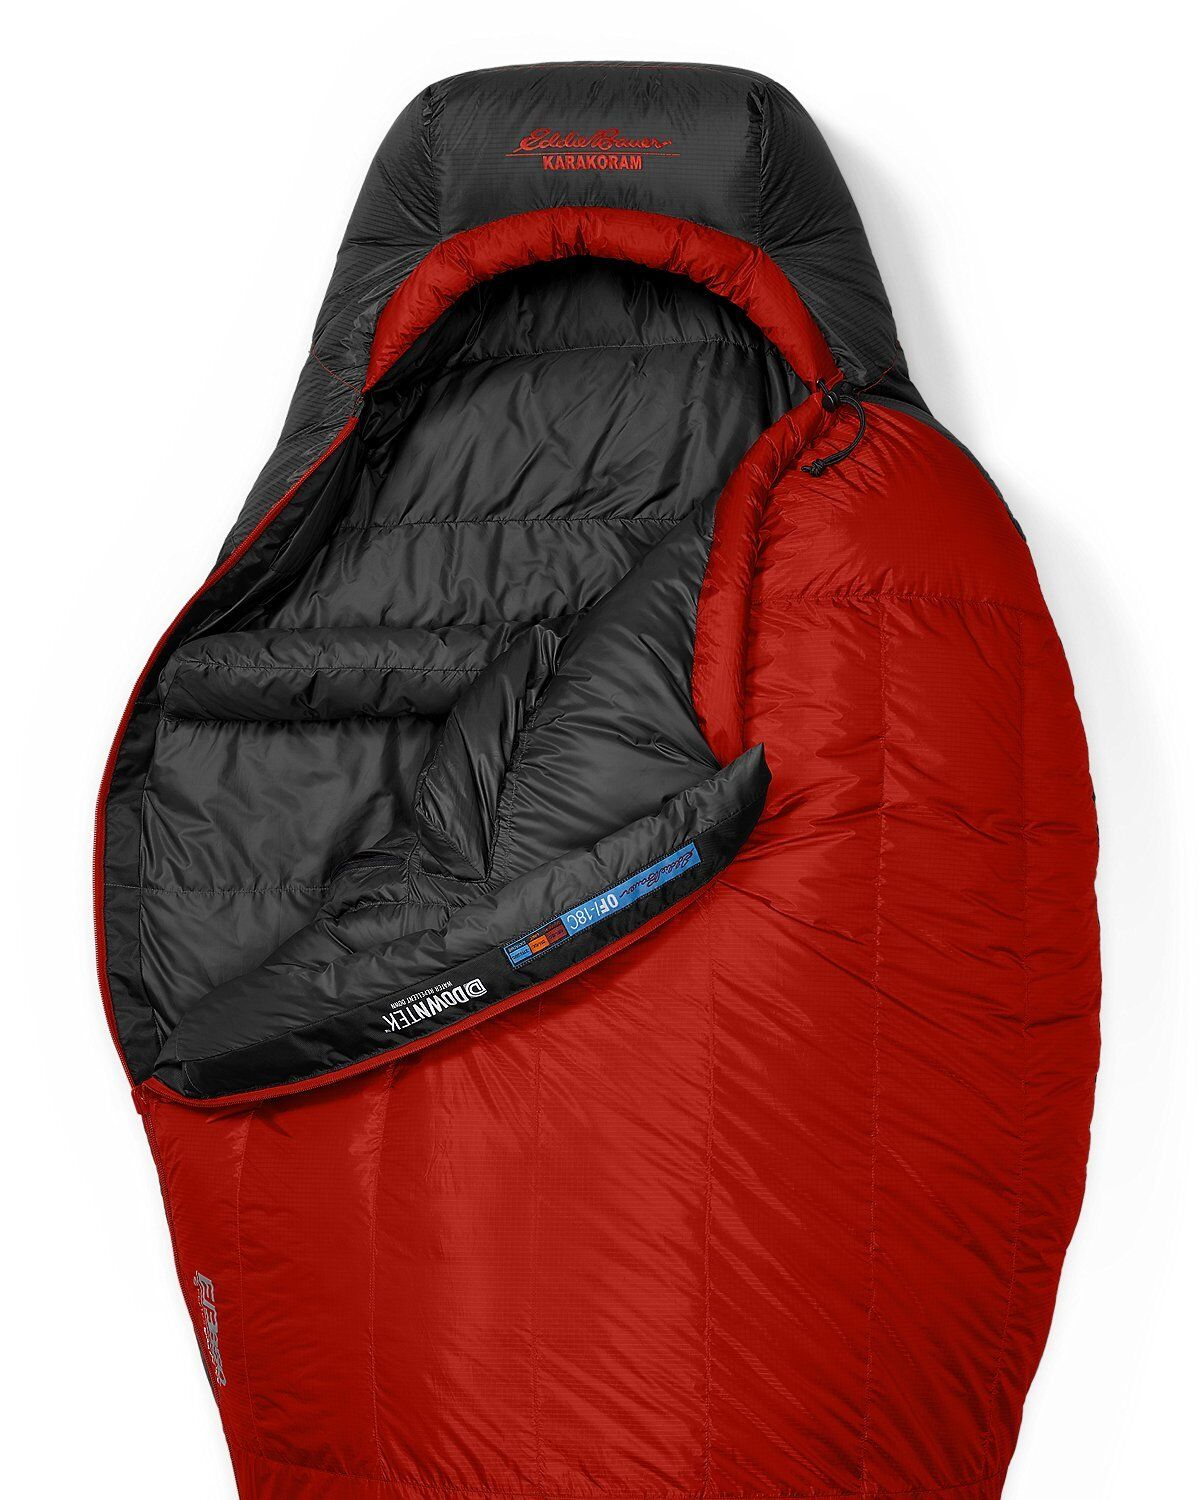 2019 FIRST ASCENT KARA KORAM 0° STORMDOWN SLEEPING BAG 850 FILL DOWN NWT